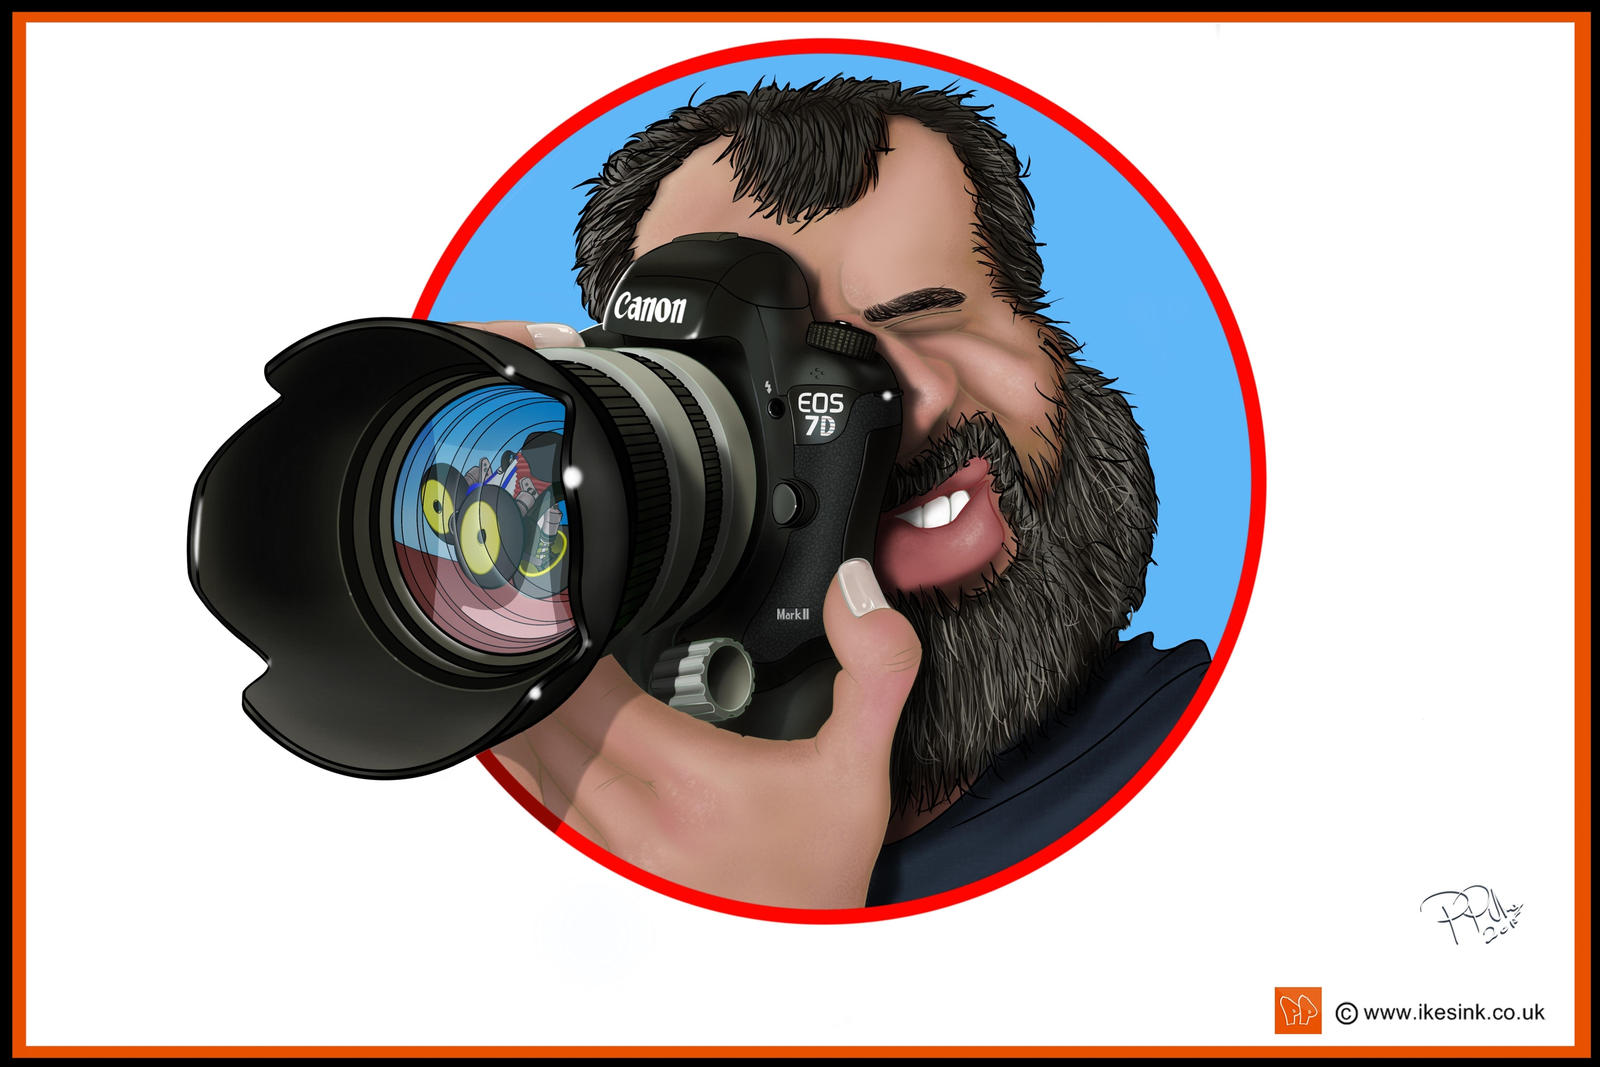 Caricature of RC photographer by PIKEO